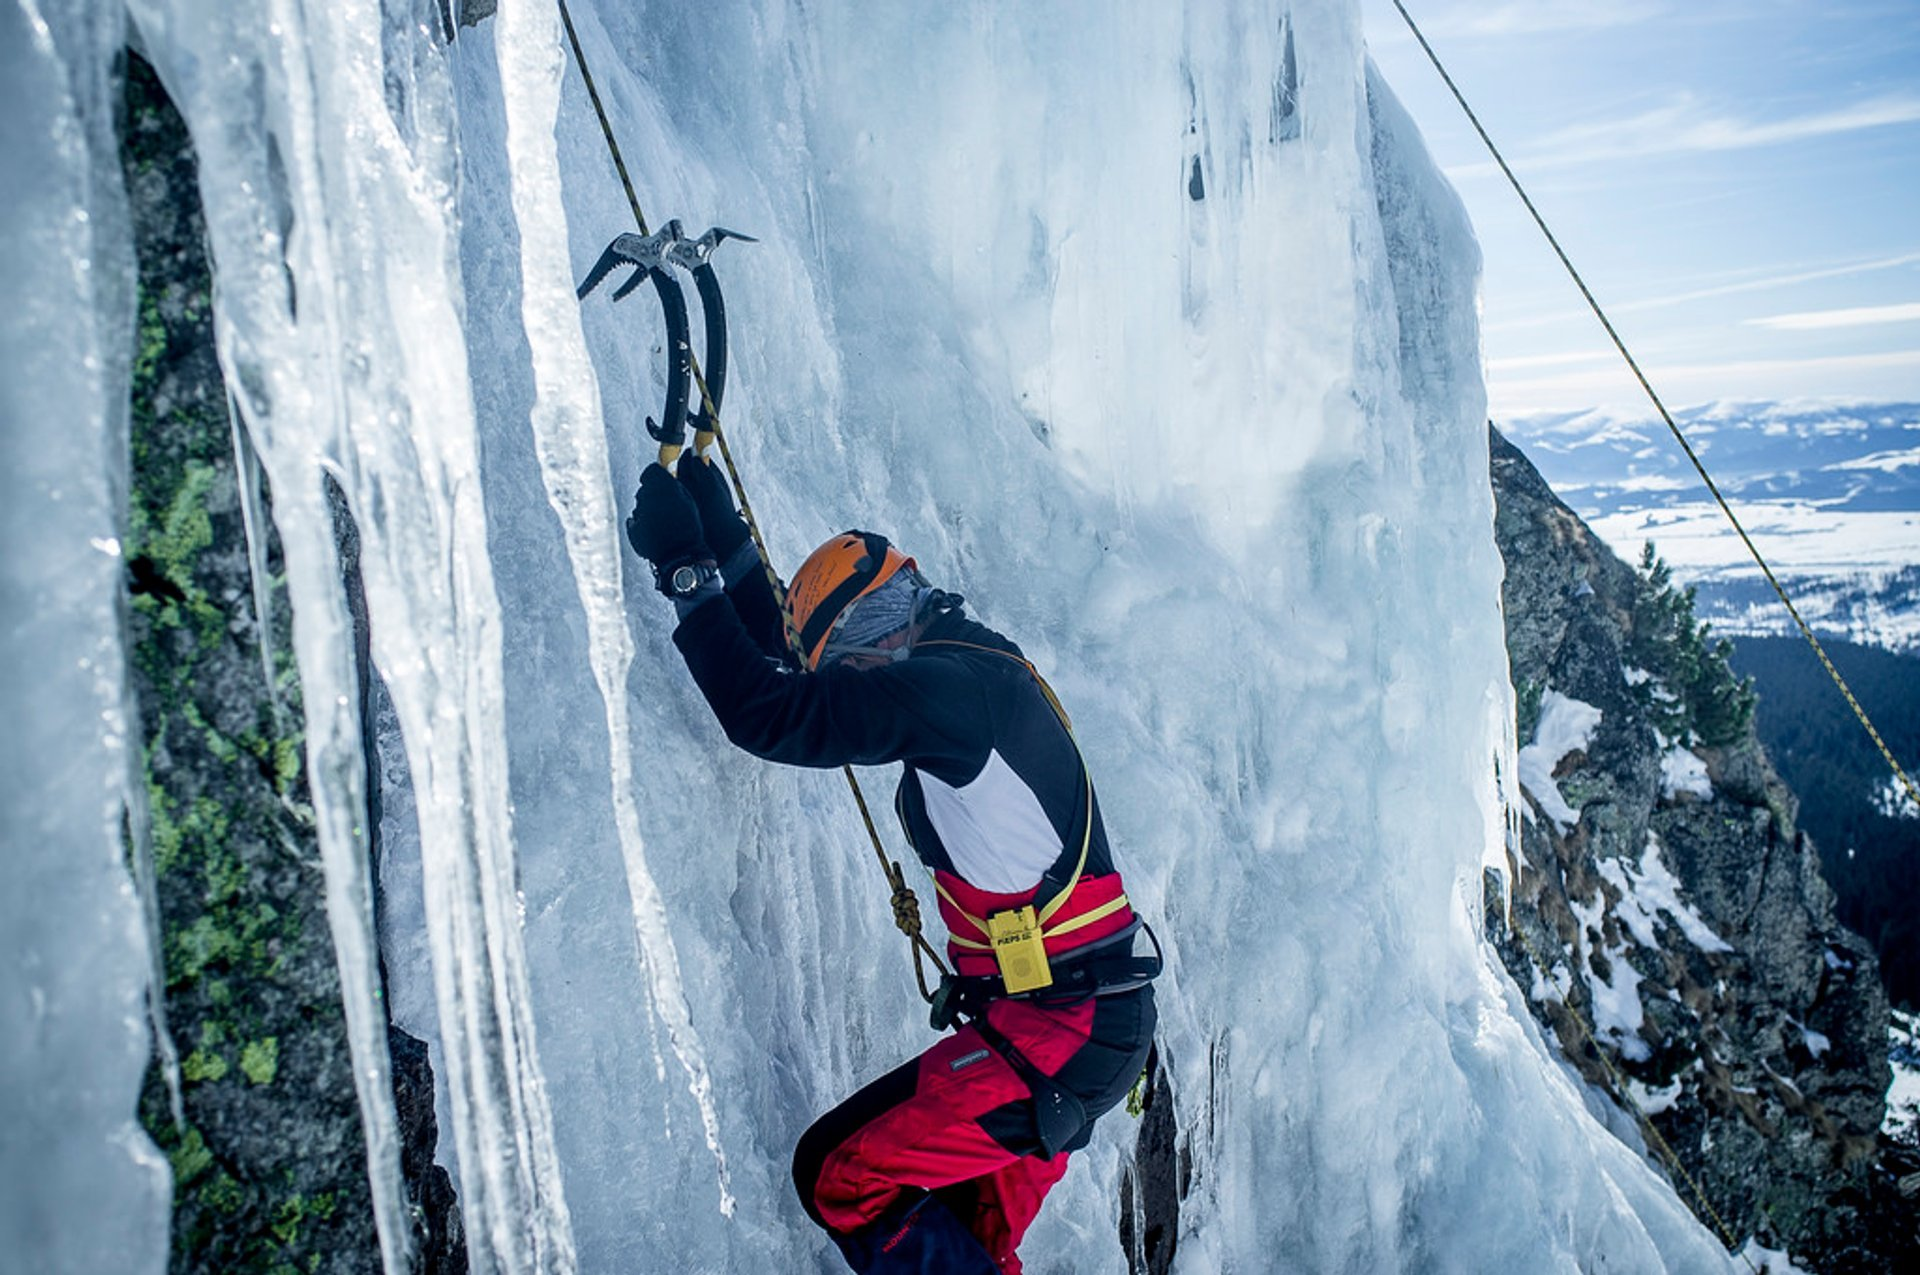 Ice climbing in the Tatra Mountains 2020